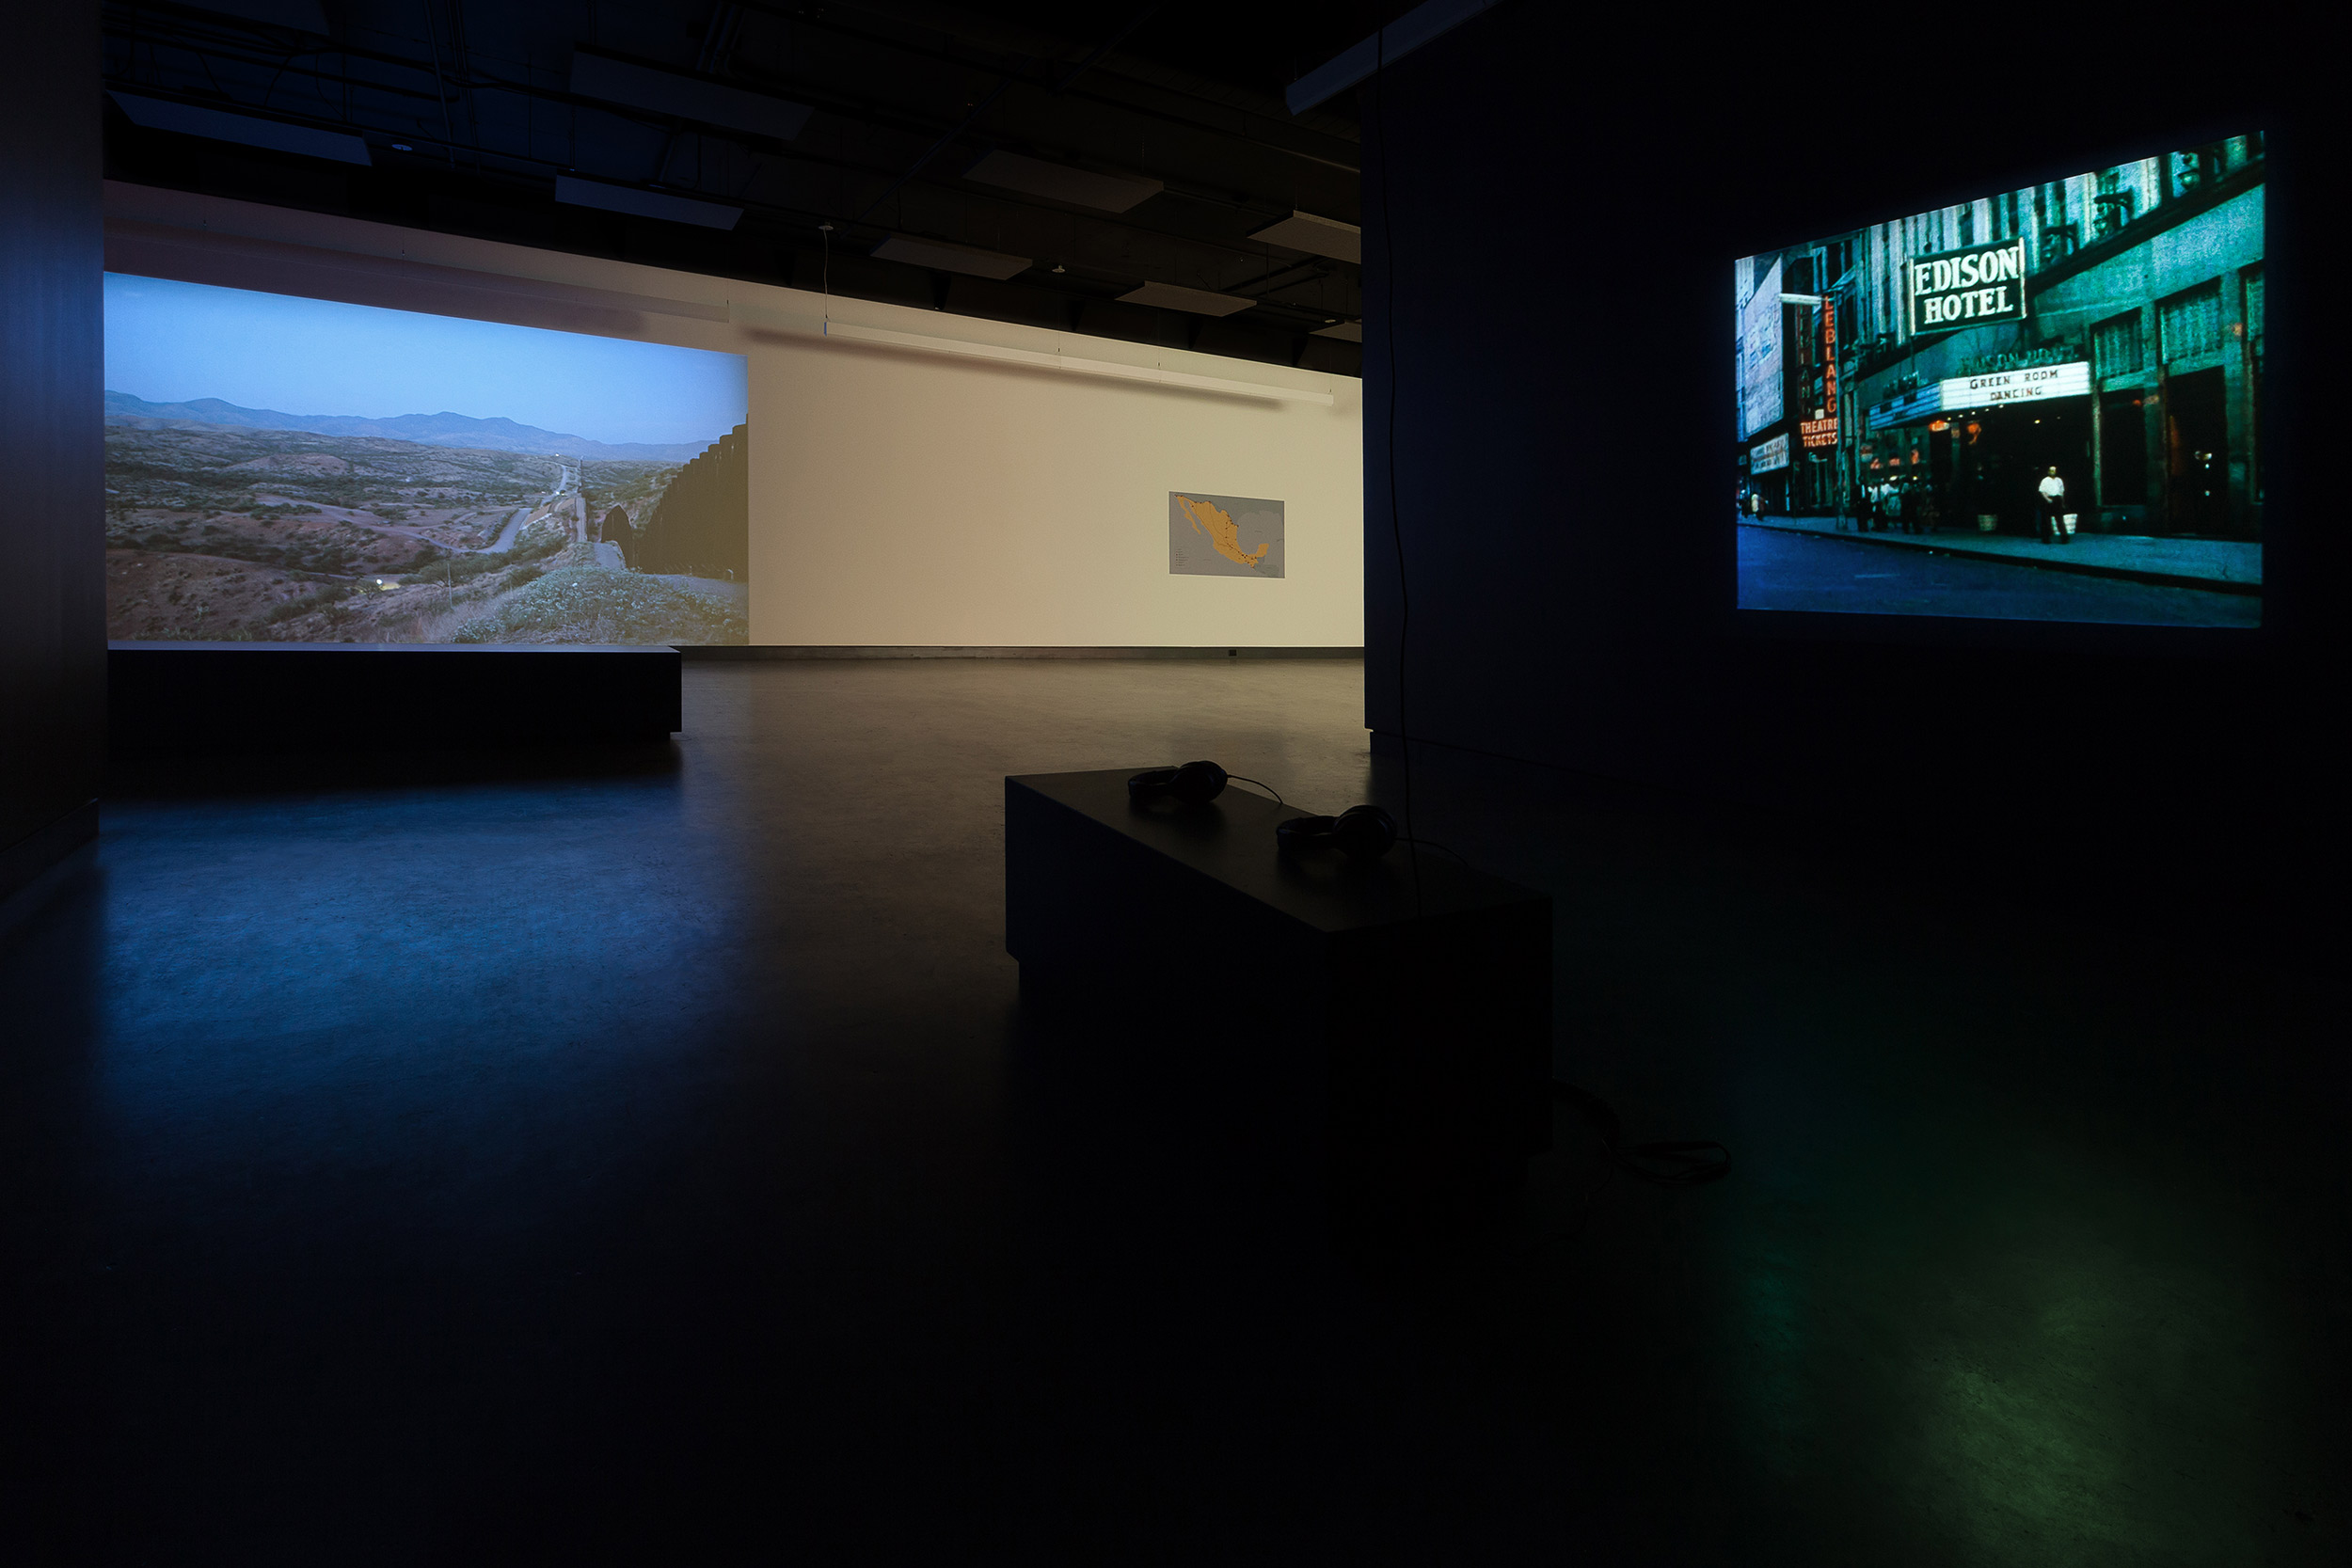 © Hubert Caron-Guay, Arroyos (2017) (left) and Lisl Ponger,  Passages  (1996) (right). Installation view. Photo: Marilou Crispin.